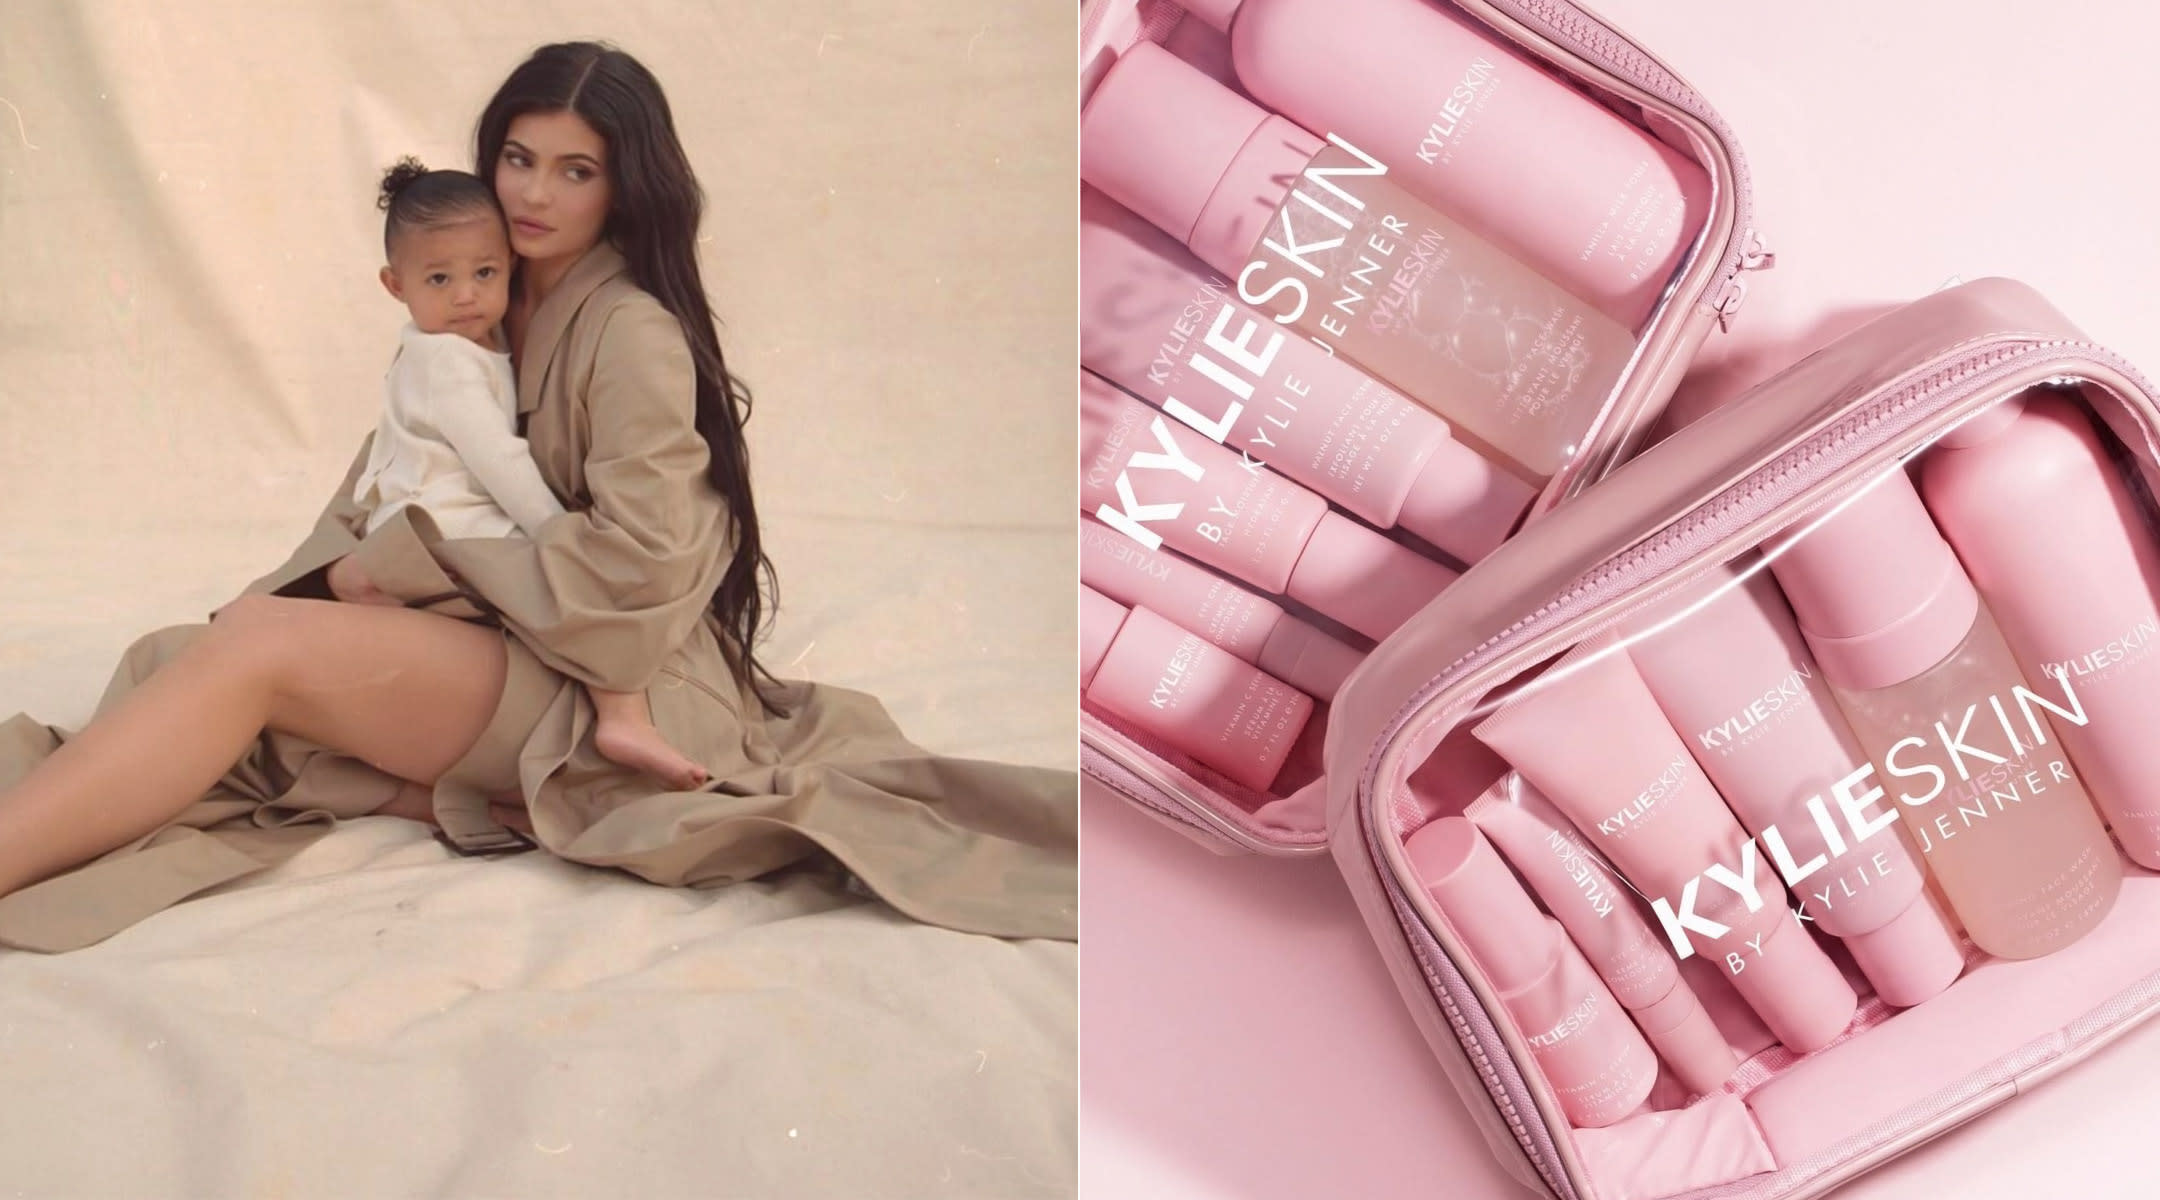 kylie jenner releases skincare line